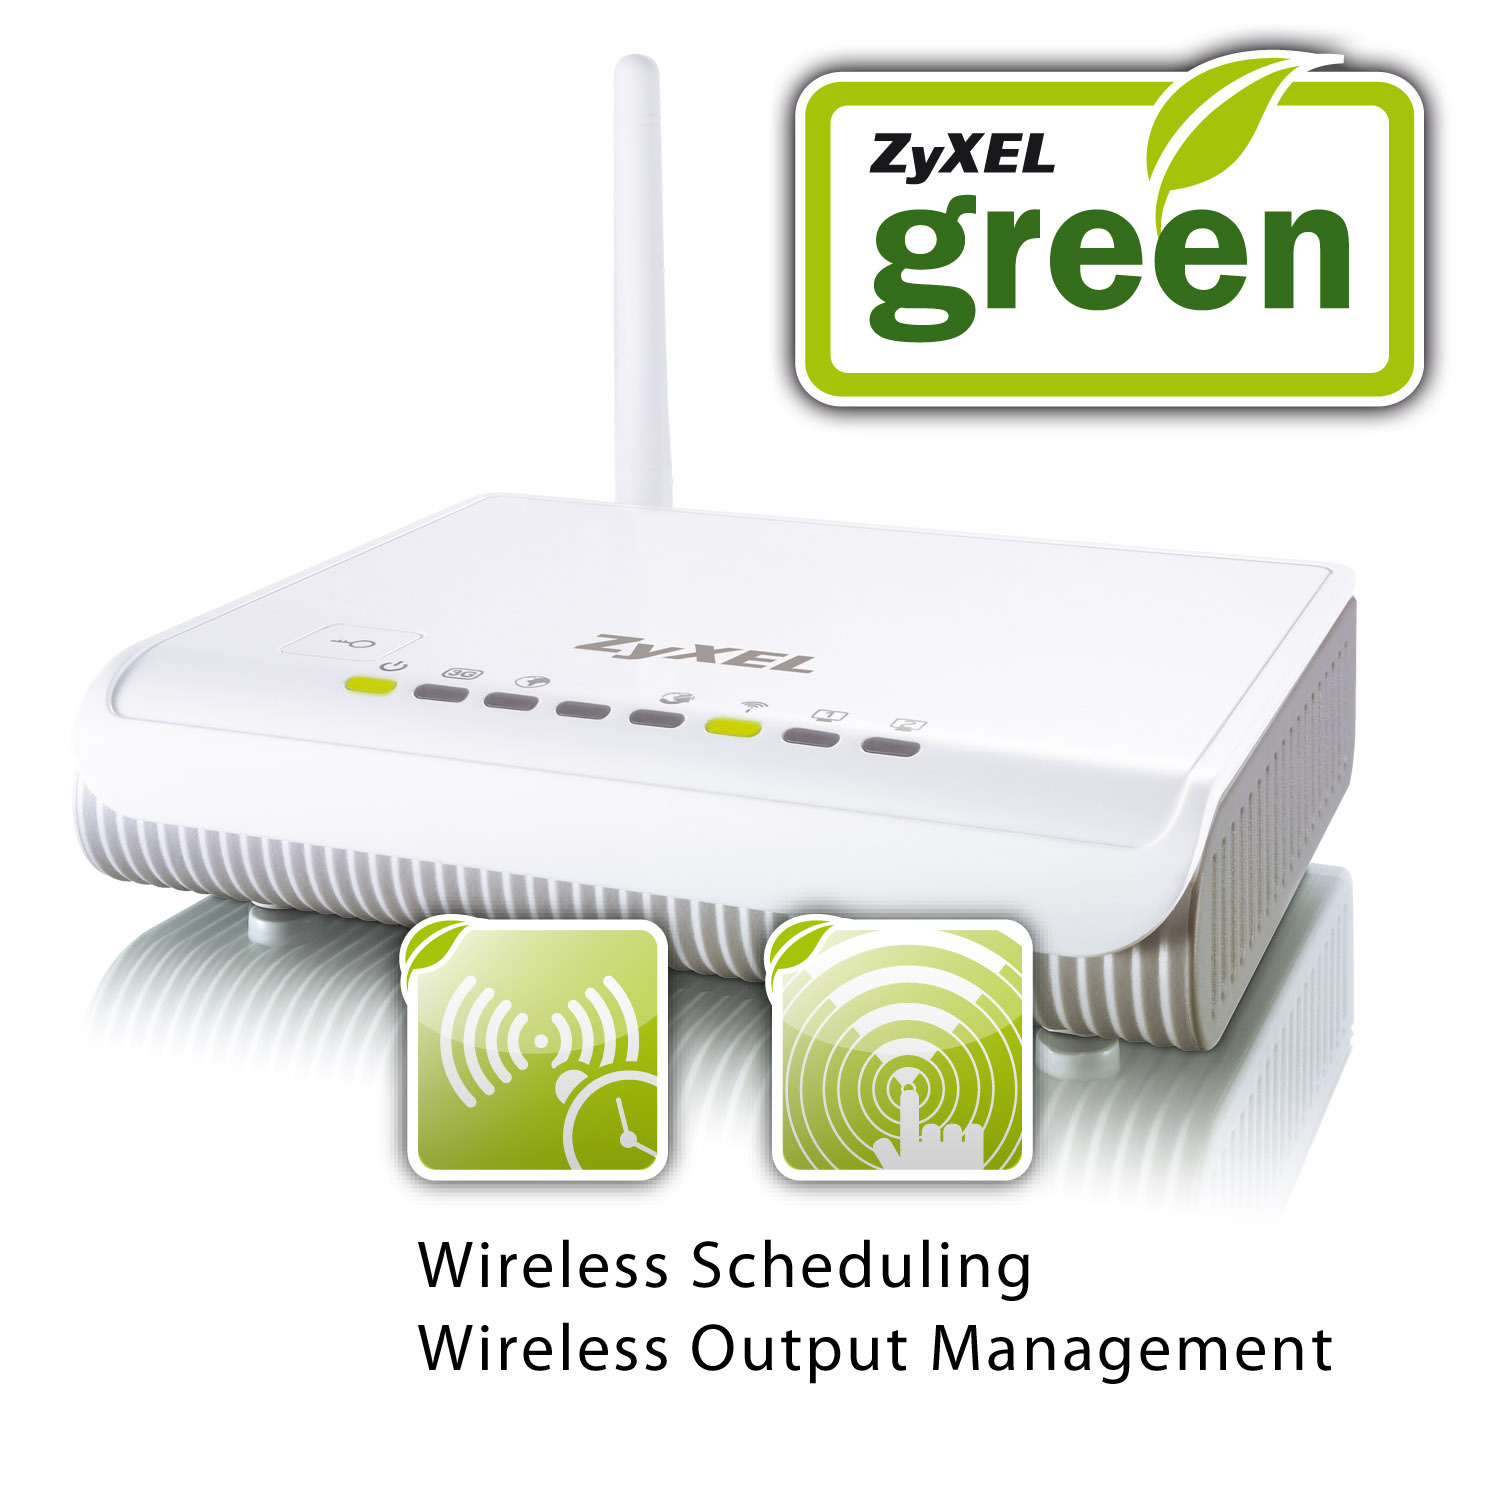 ZyXEL NBG4115 router wireless